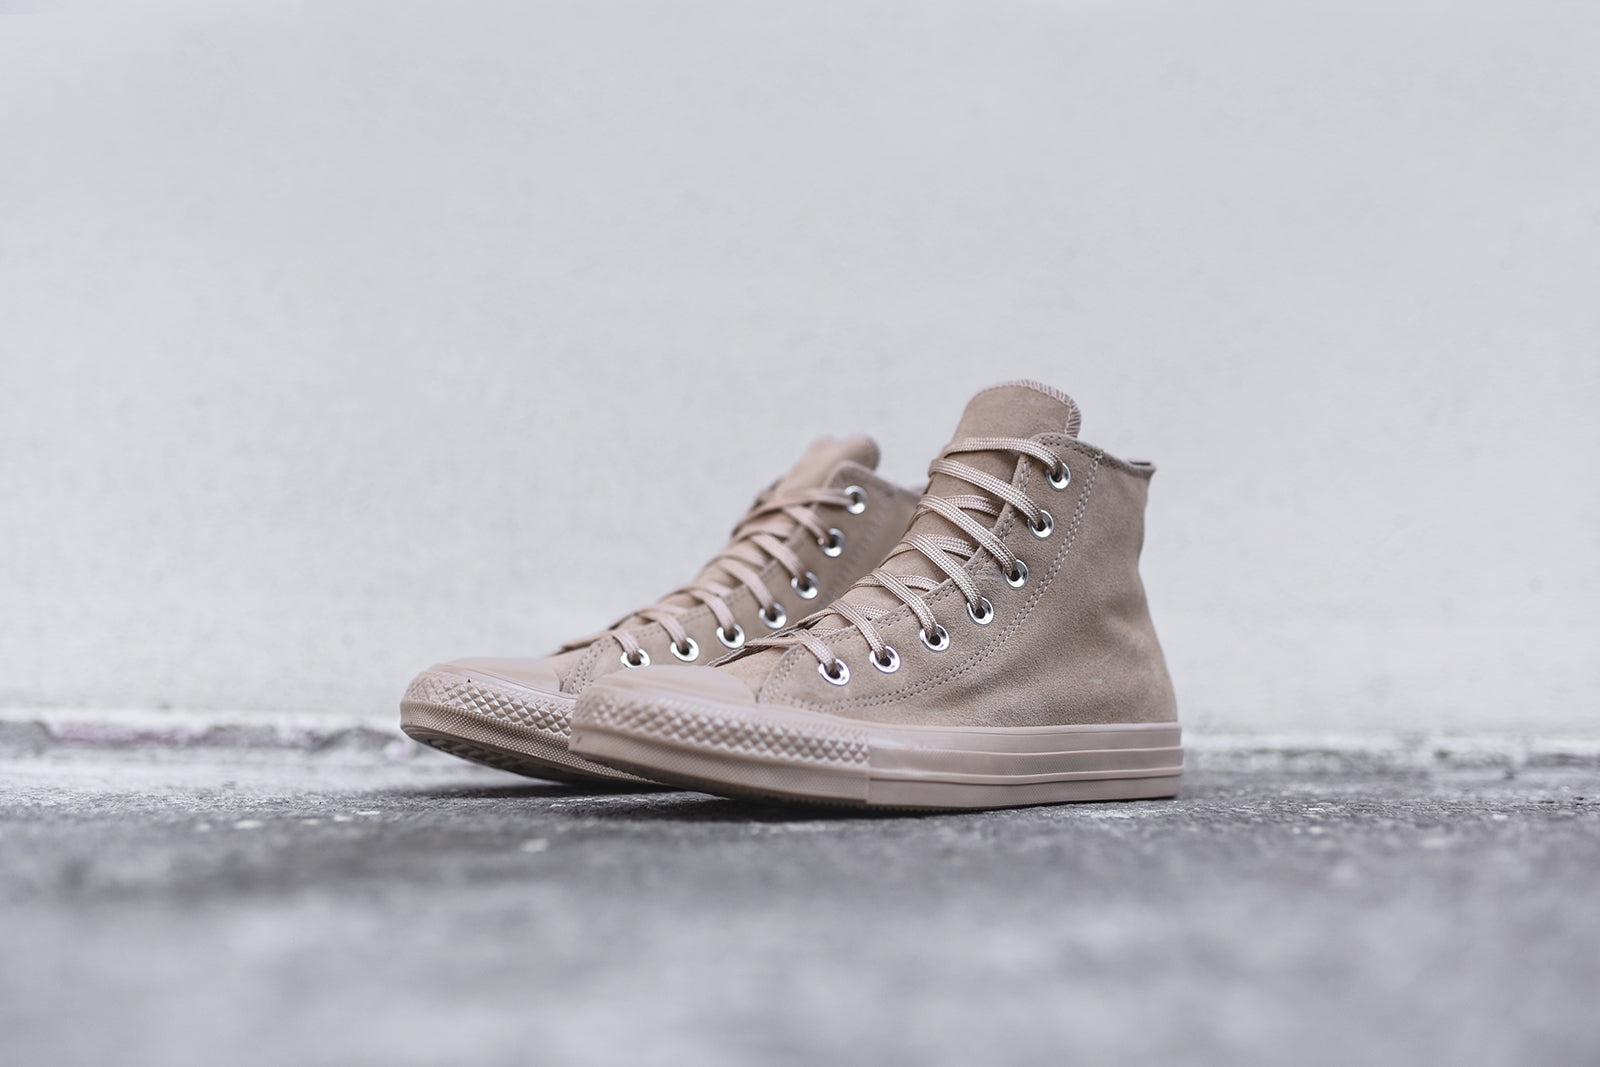 Converse Chuck Taylor Hi Light